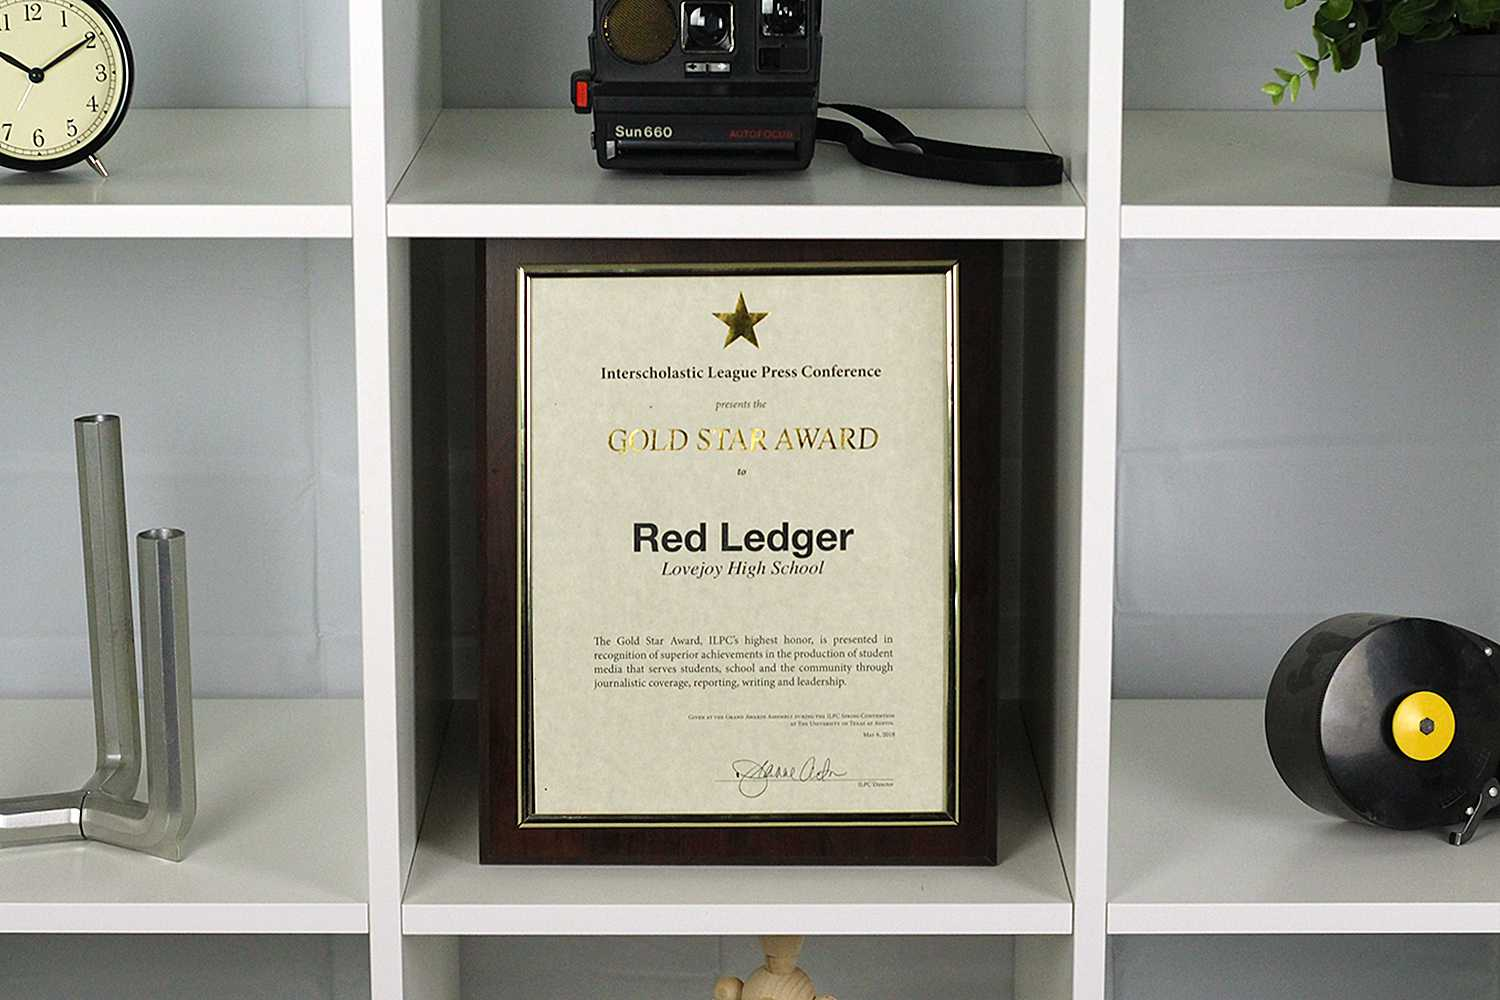 In addition to the individual awards, The Red Ledger also took home ILPC's most prestigious award for online newspaper with the Gold Star.